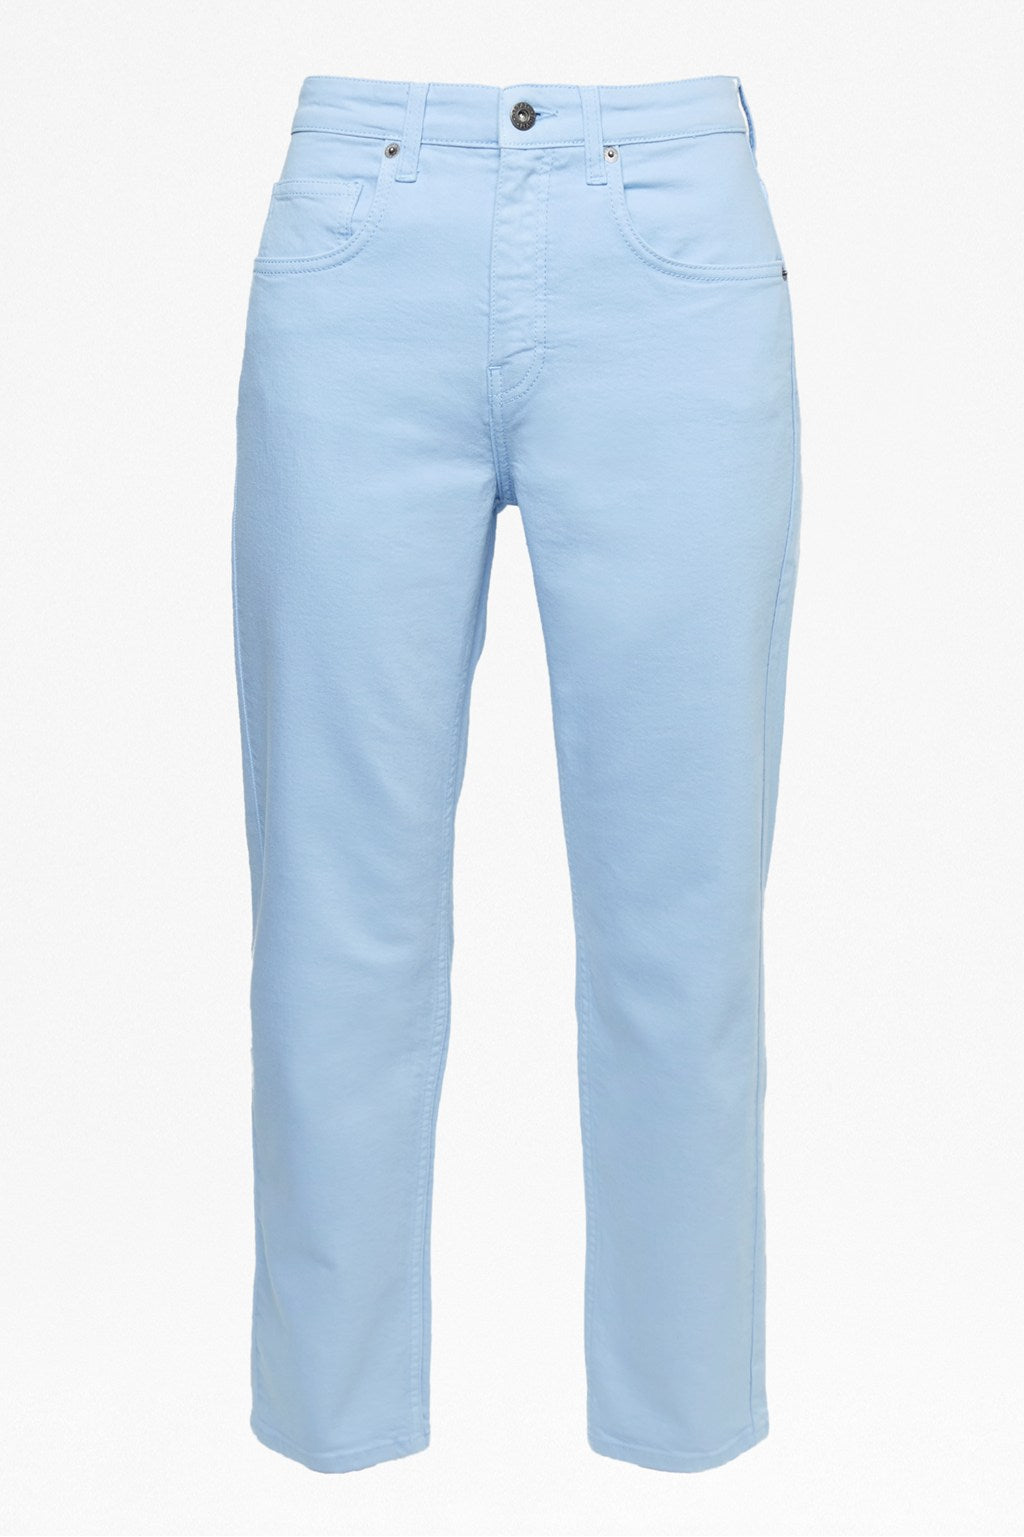 Great Plains High Rise Straight Leg Jeans for Ladies in Powder Blue